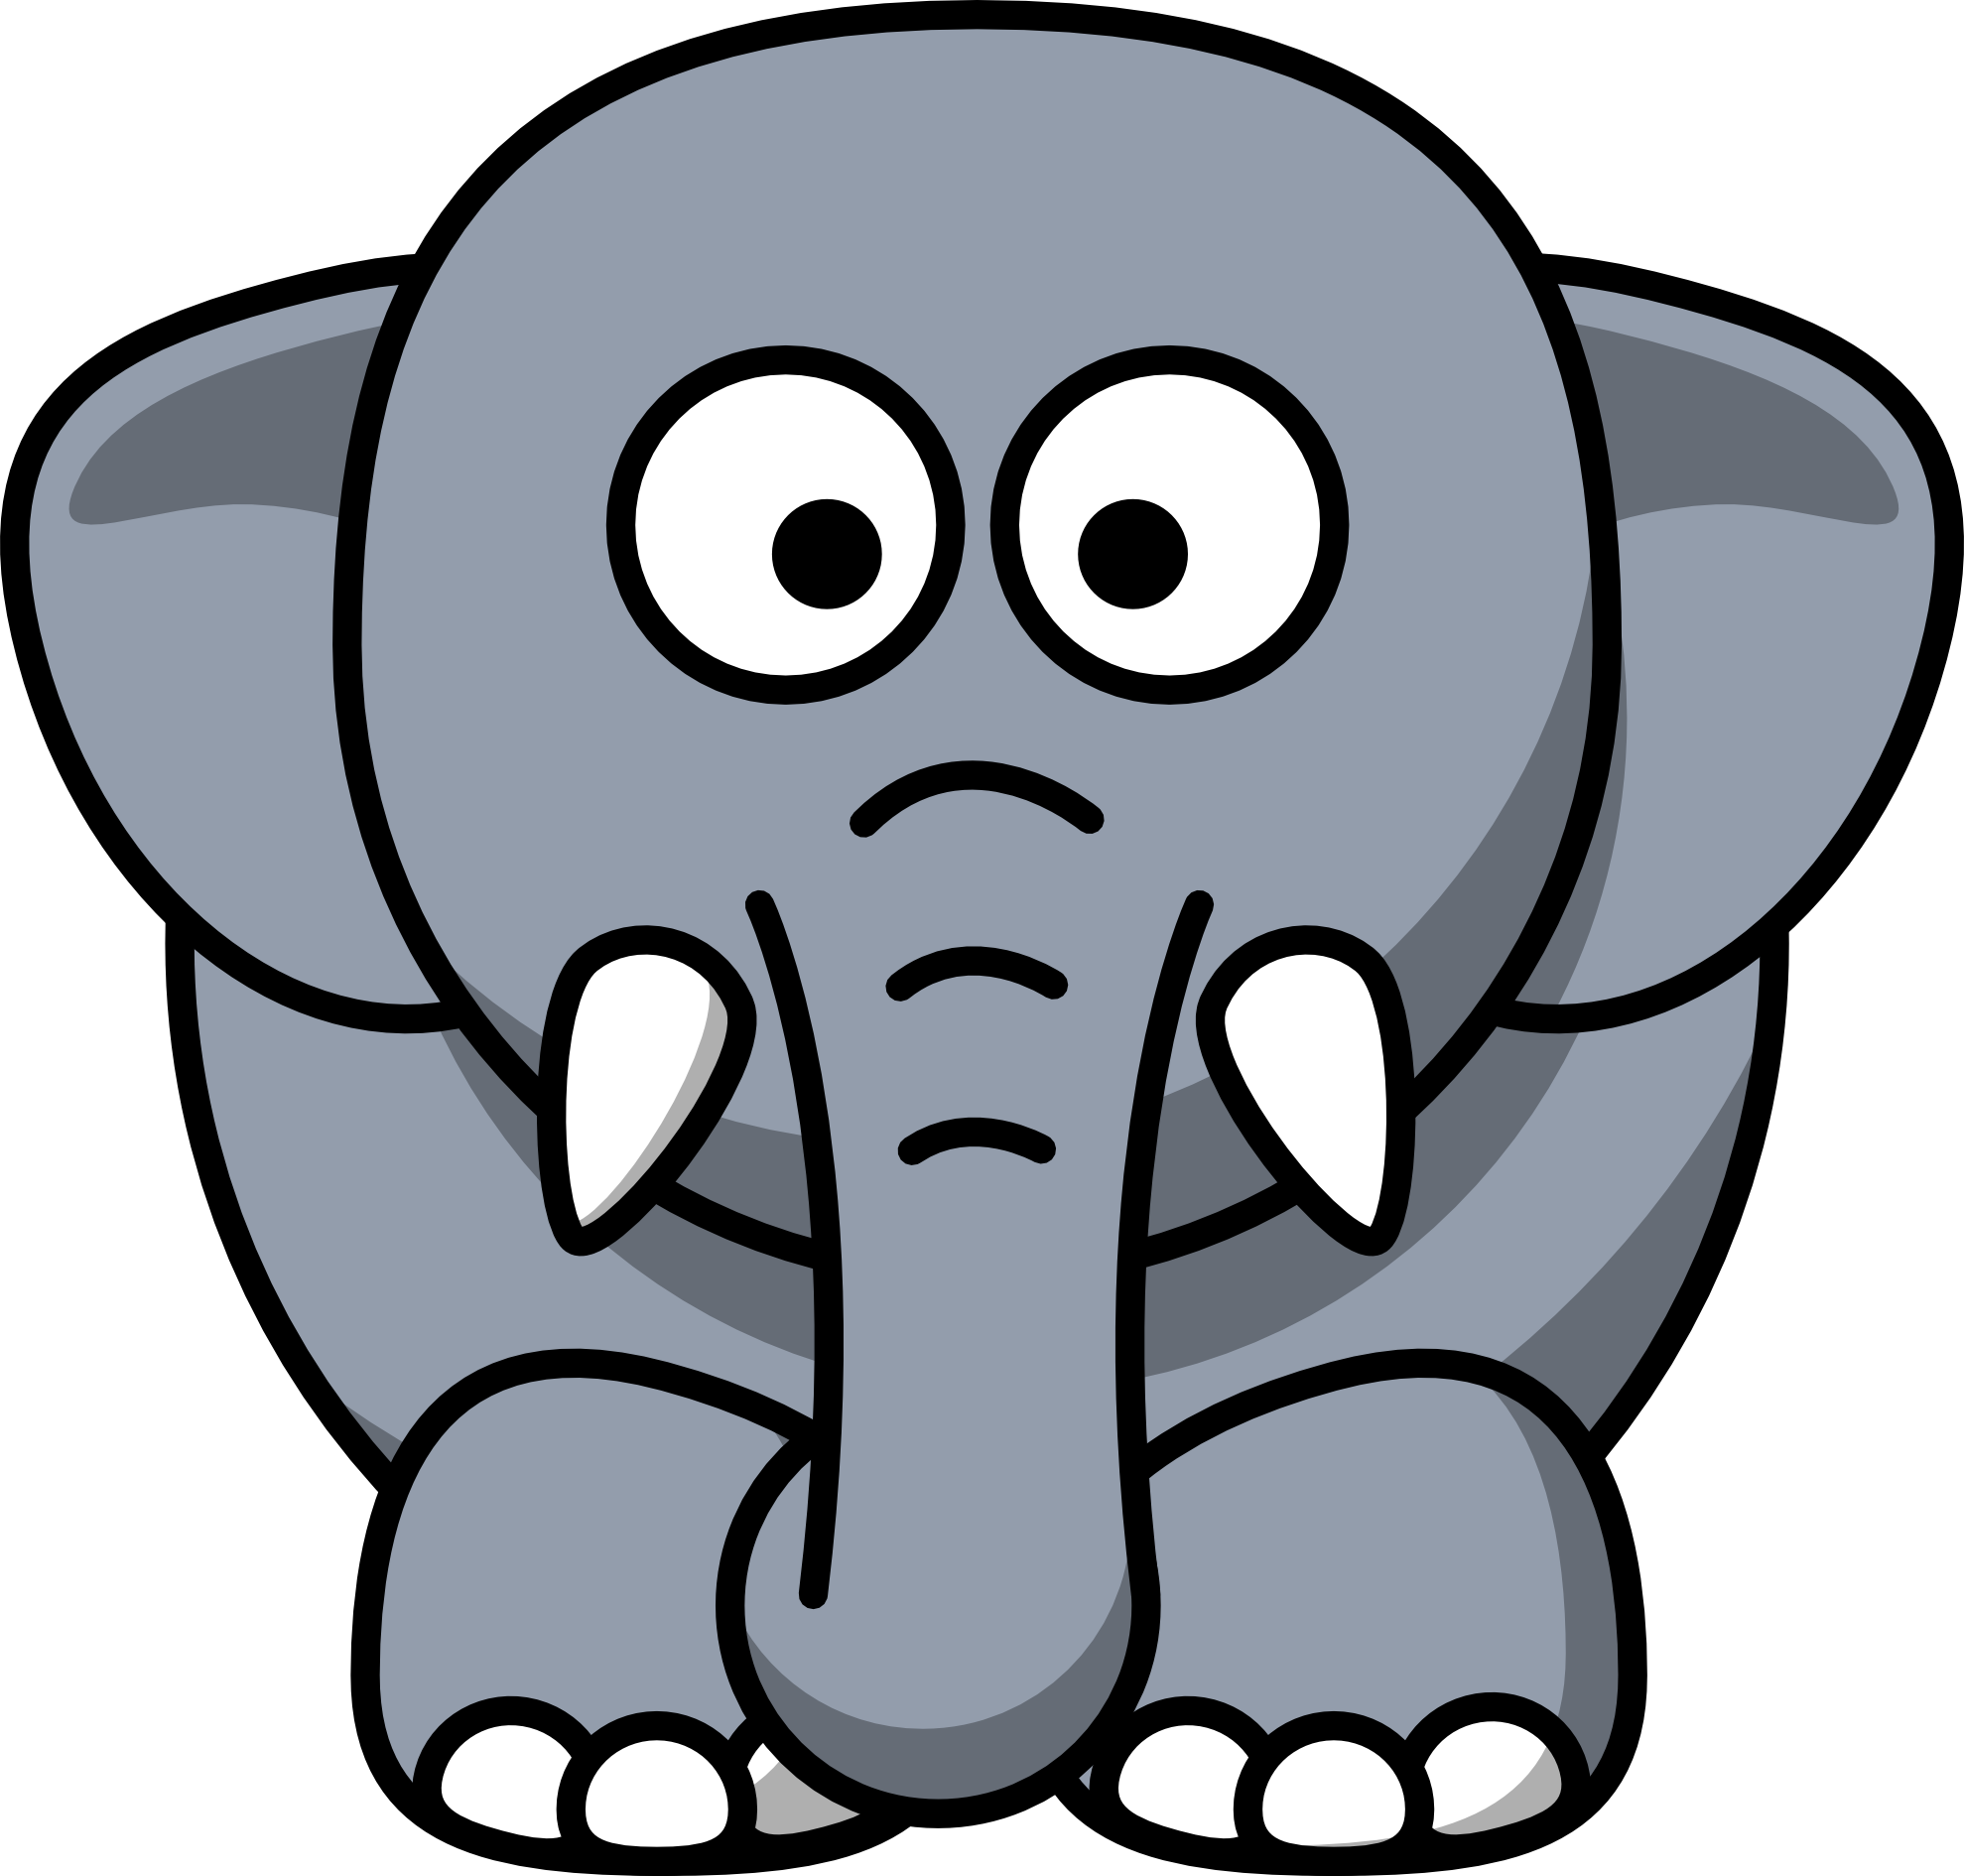 Clipart of a elephant clip royalty free Free Elephants Images, Download Free Clip Art, Free Clip Art on ... clip royalty free